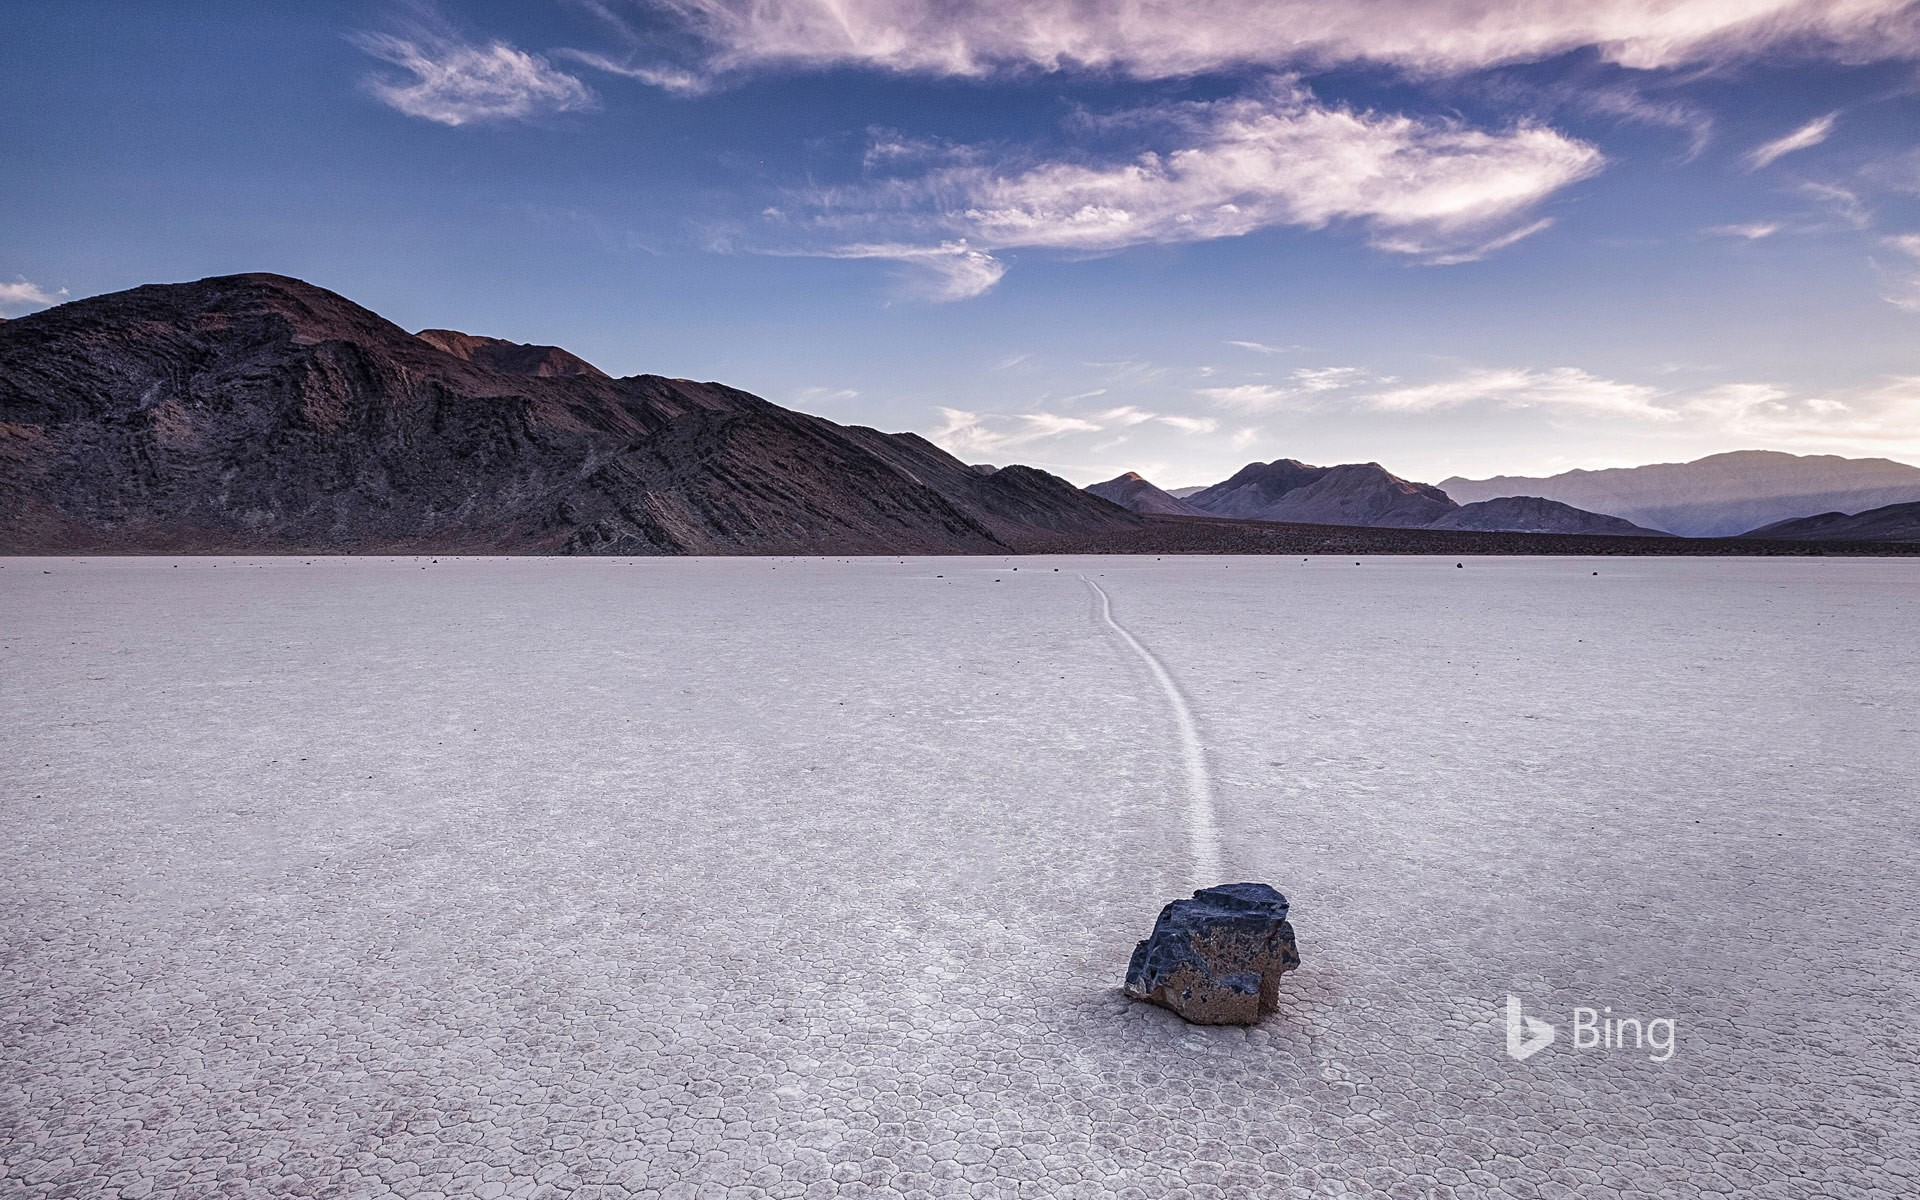 Sailing stone at Racetrack Playa in Death Valley National Park, California